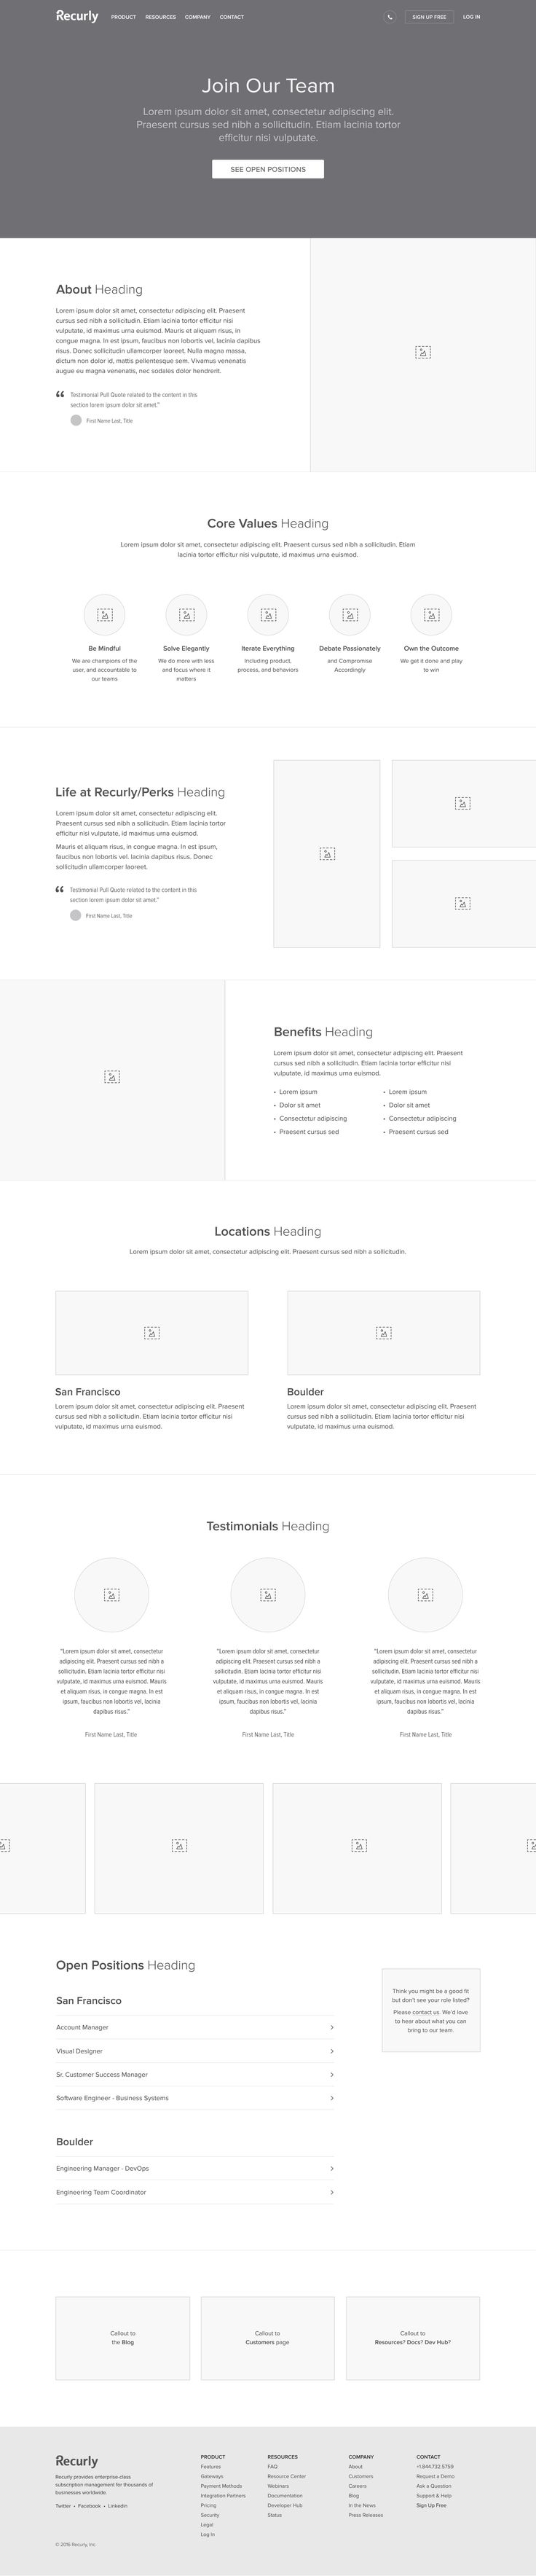 Recurly careers wireframe